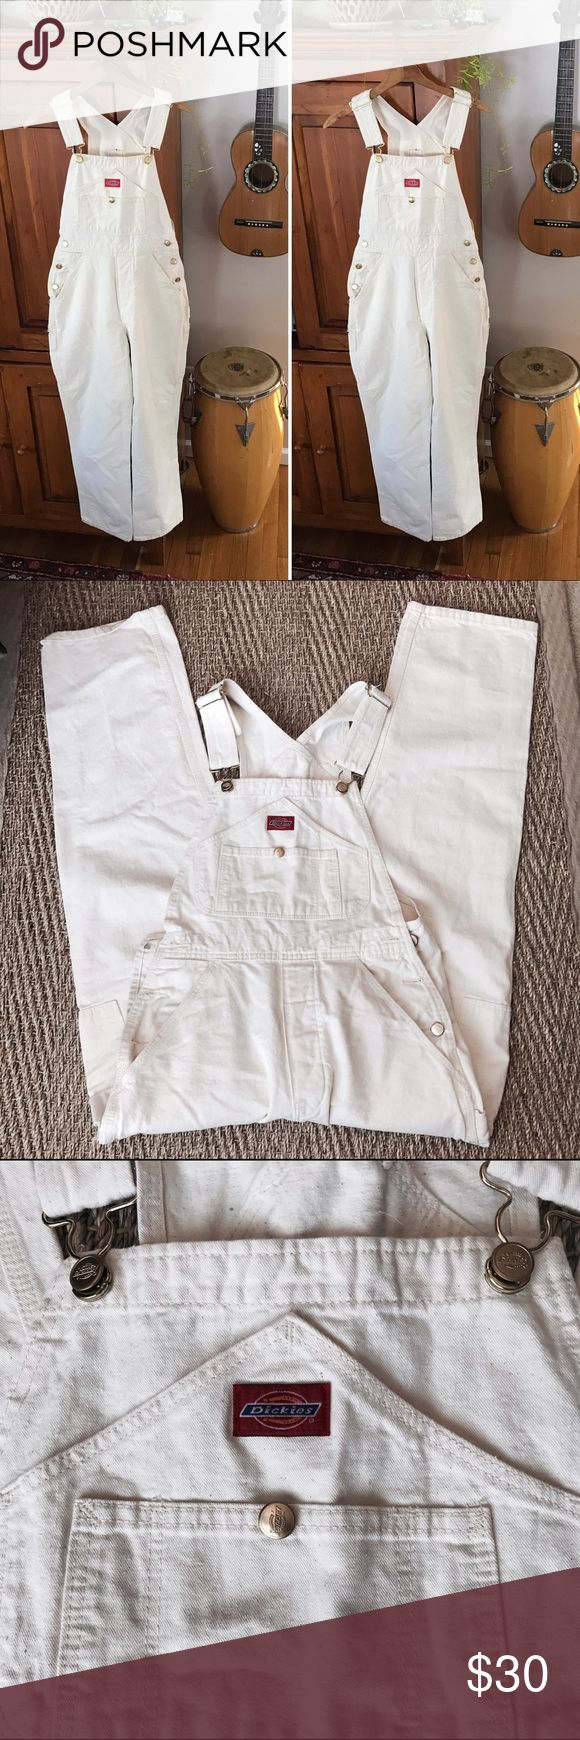 Dickies painters Overalls. Dickies painters overalls size small new without tag. Believe I purchased these for me but they are too large I would say fits medium size 6 best Dickies Other